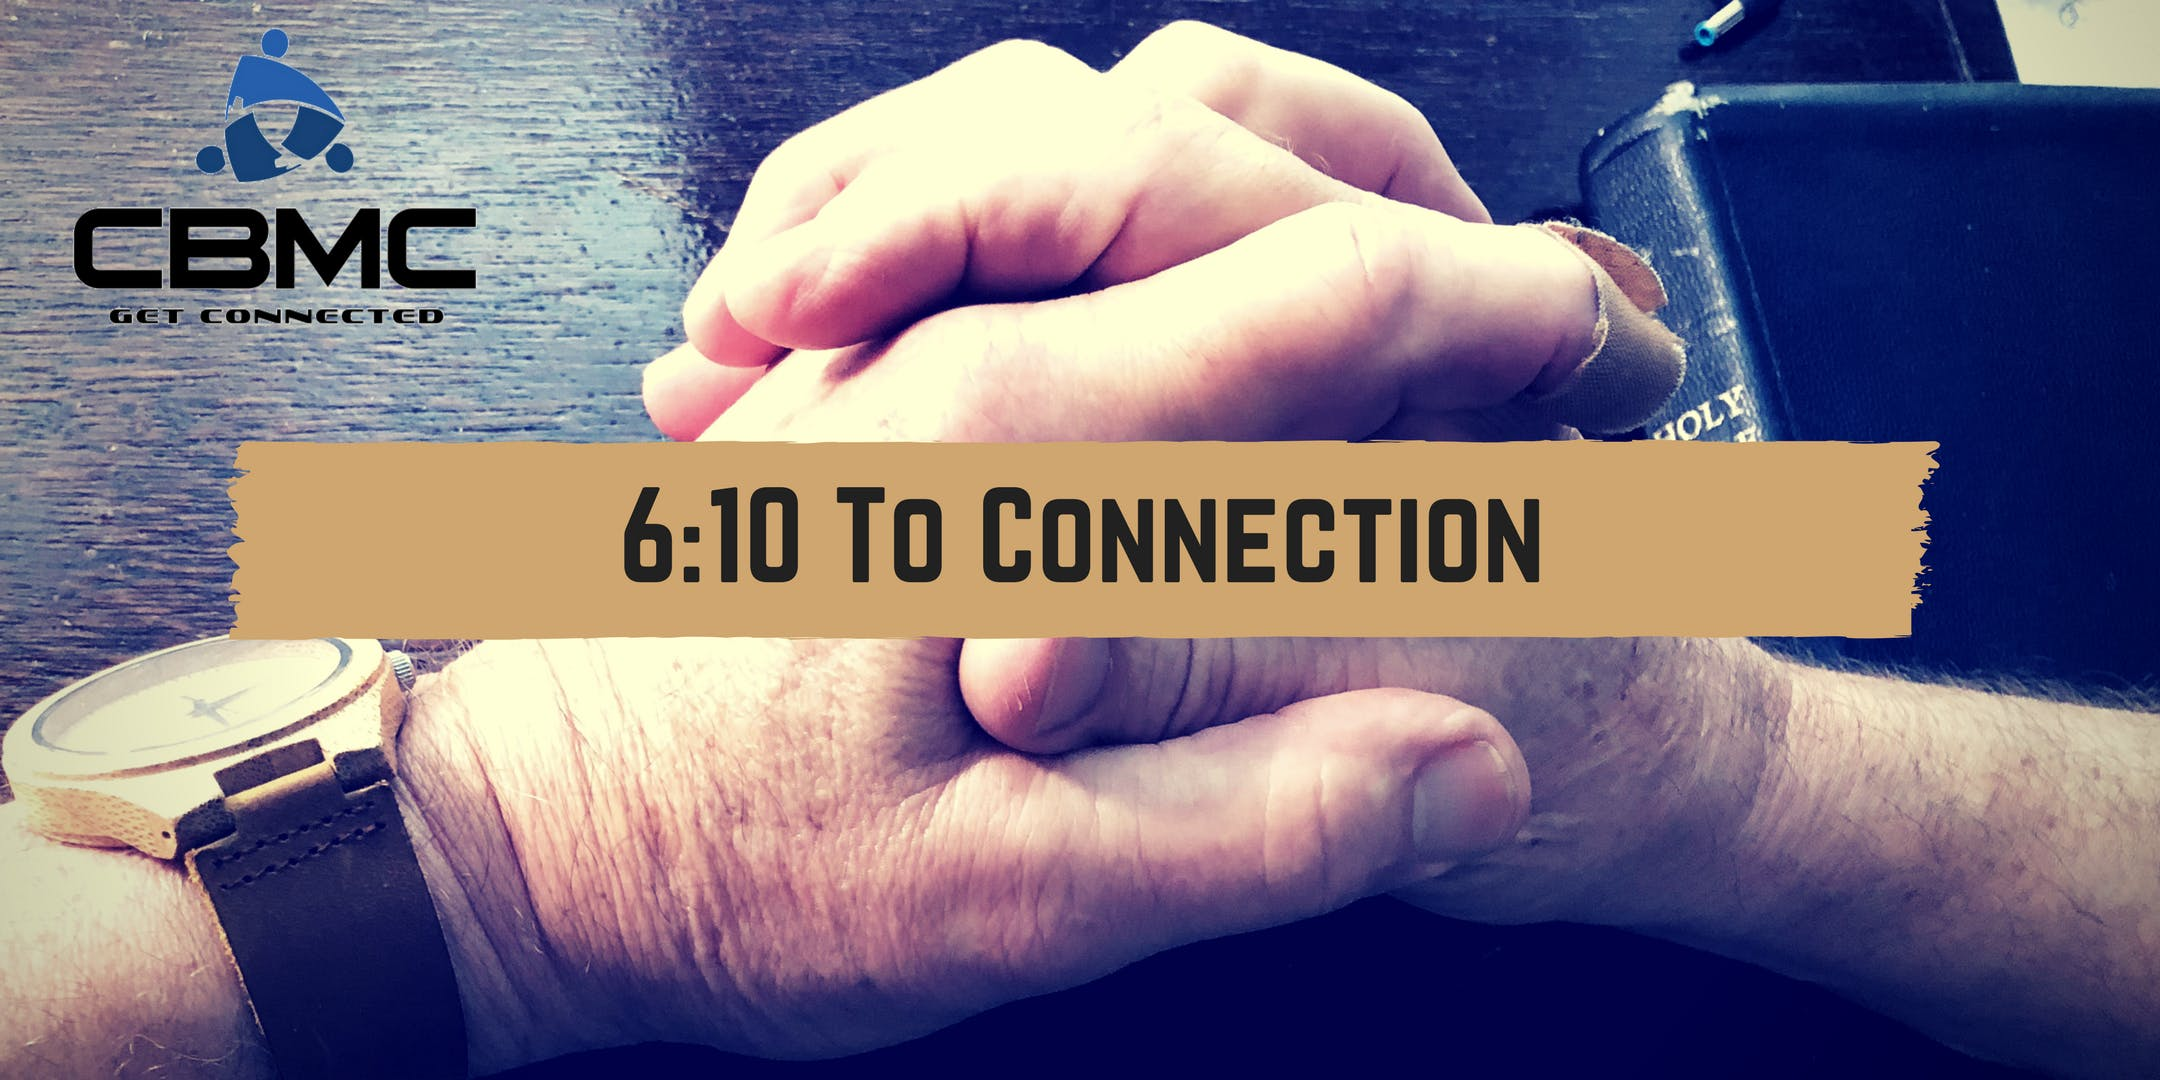 6:10 to Connection